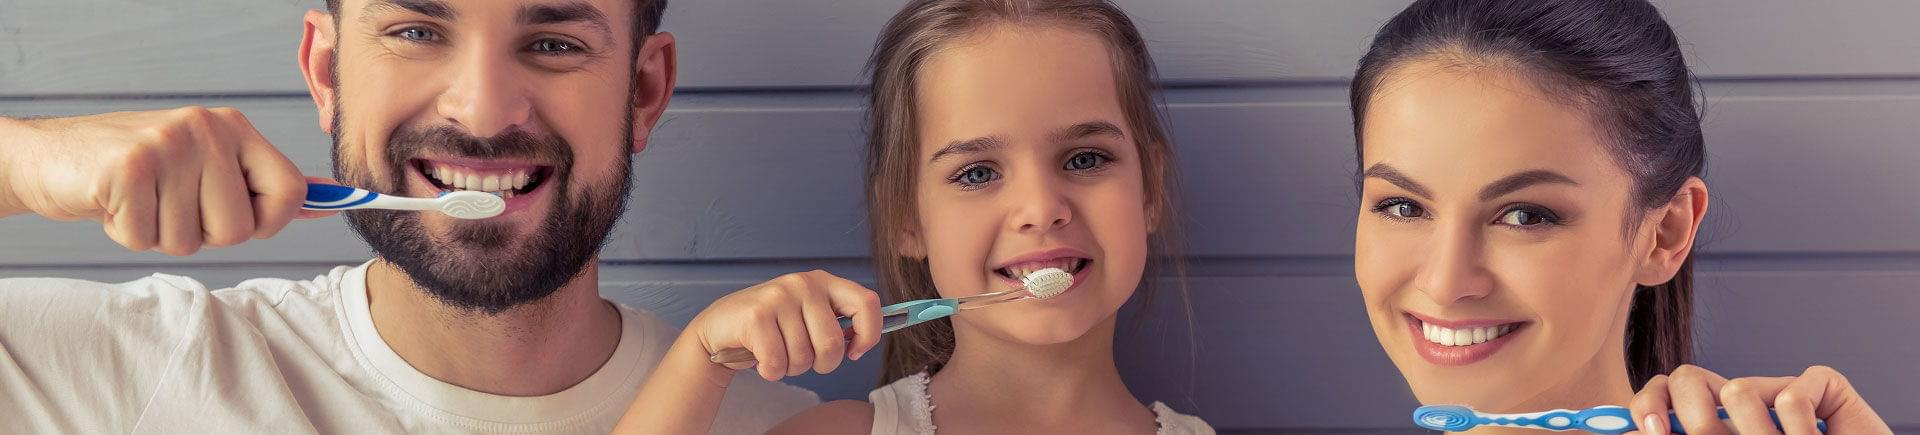 Parent and their little daughter having fun brushing their teeth.